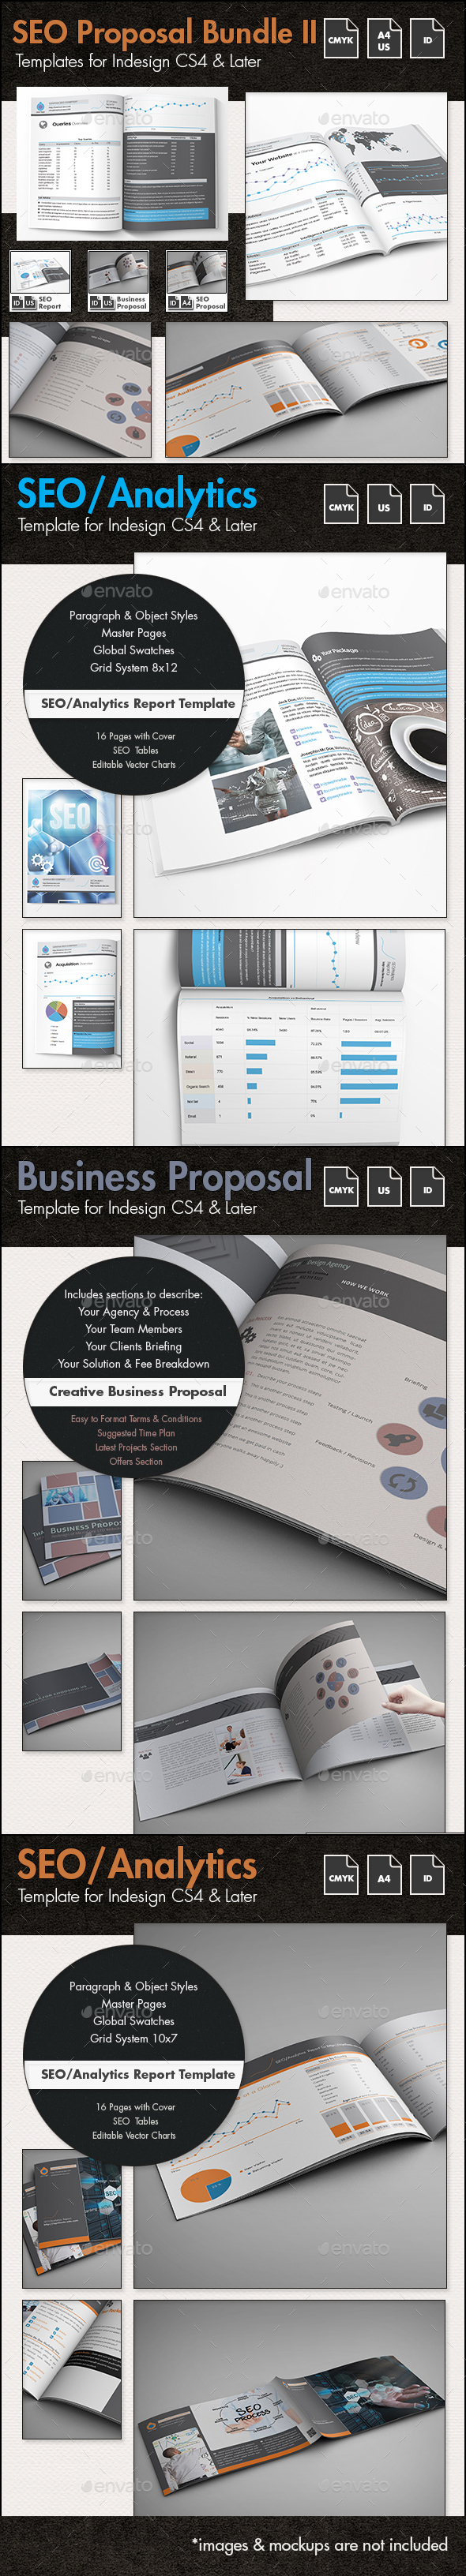 Seo report template graphics designs templates cheaphphosting Gallery